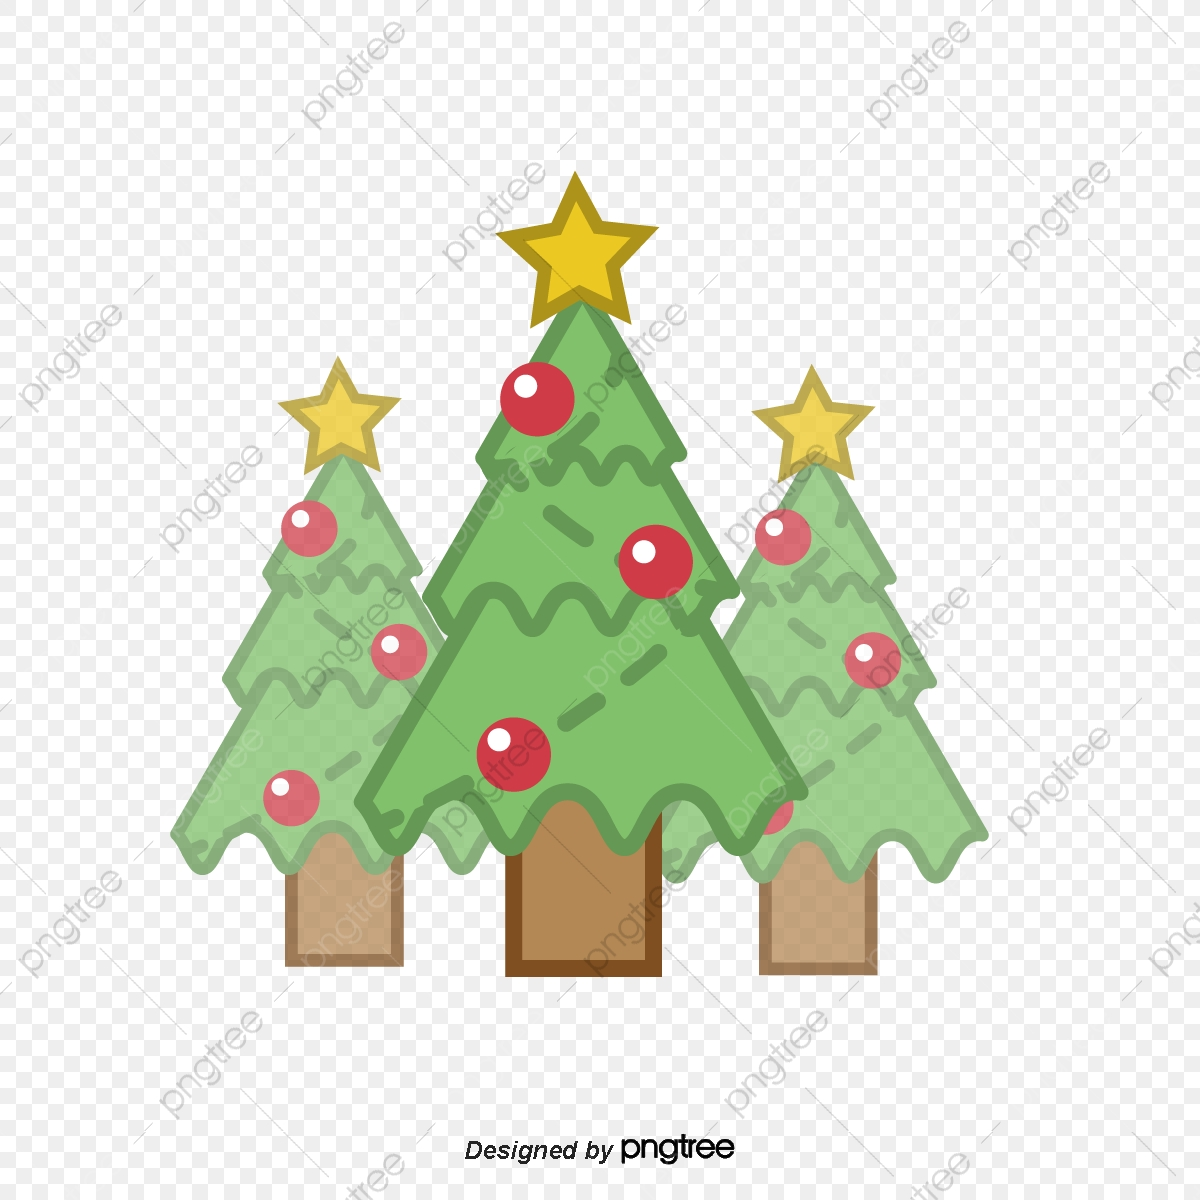 Christmas Tree Icon Png.Cute Christmas Tree Icon Cartoon Lovely Christmas Element